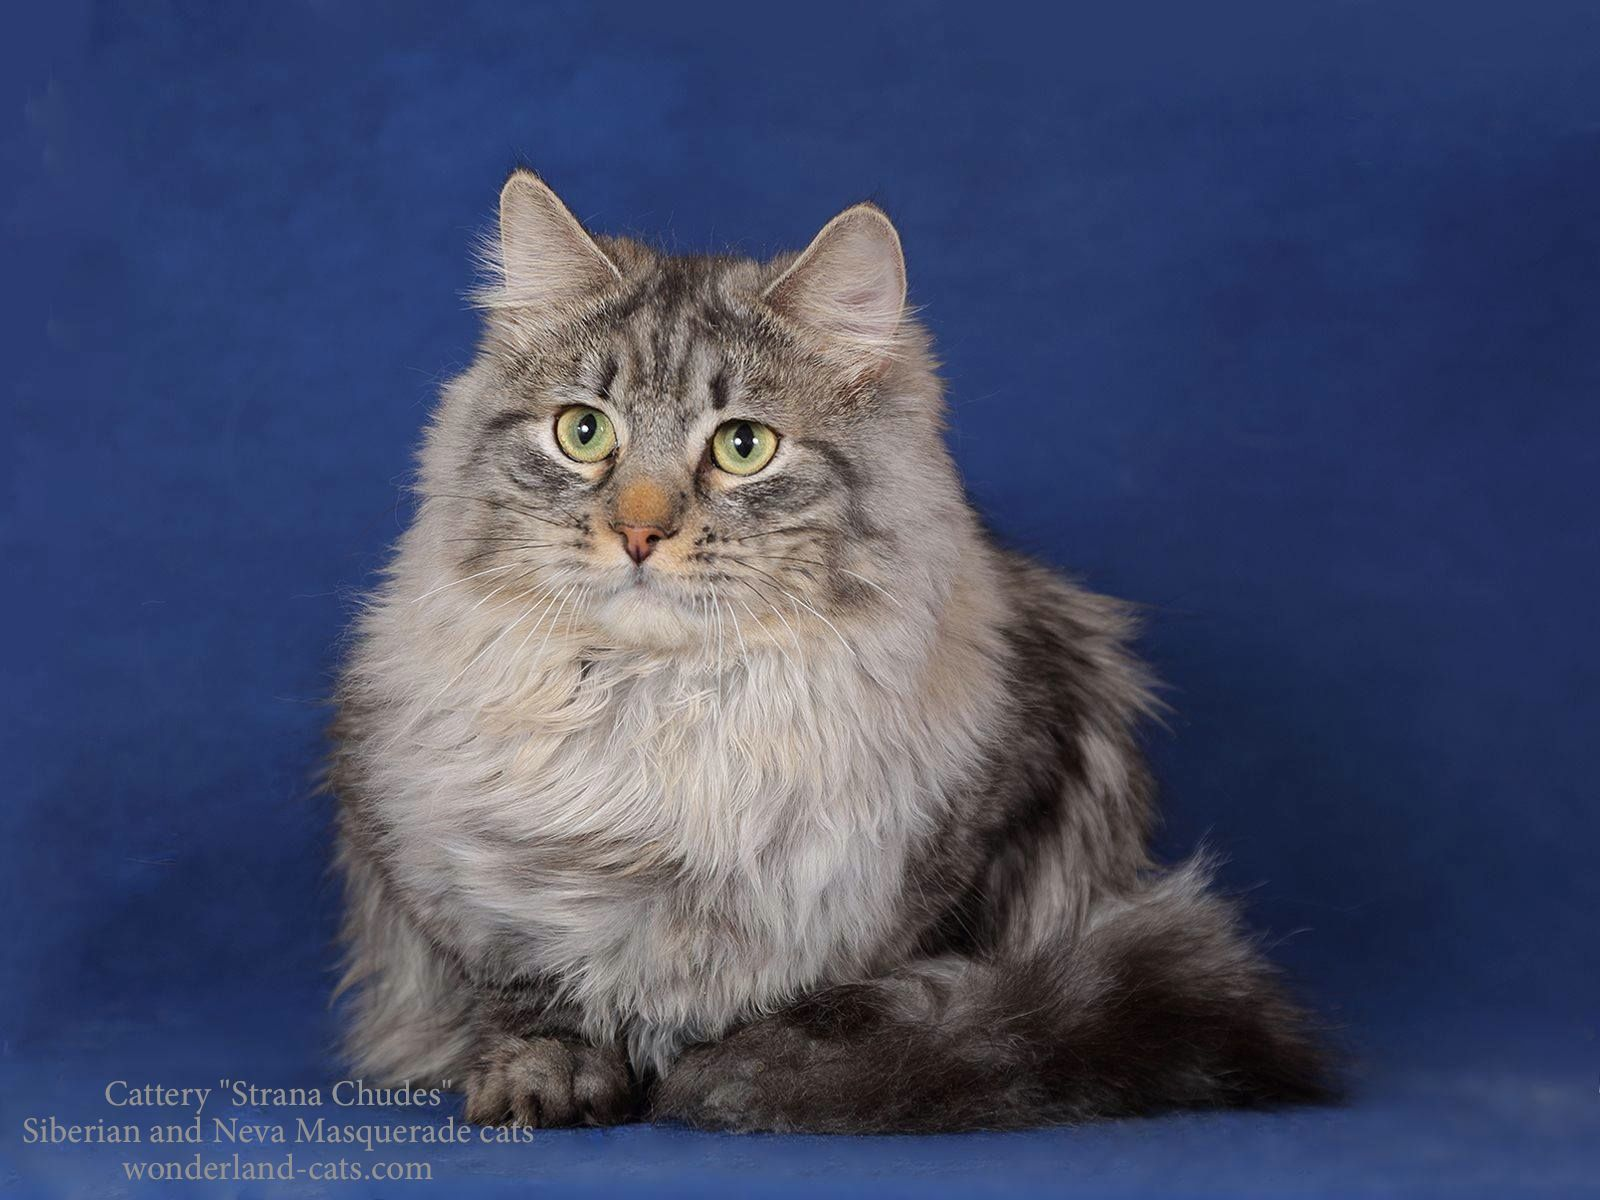 Russian Siberian Beautiful Cat Black Silver Spotted In Our Cattery Strana Chudes You Can Choose Beautiful Hypoallergenic Siberian Cats For Sale Cats Cattery